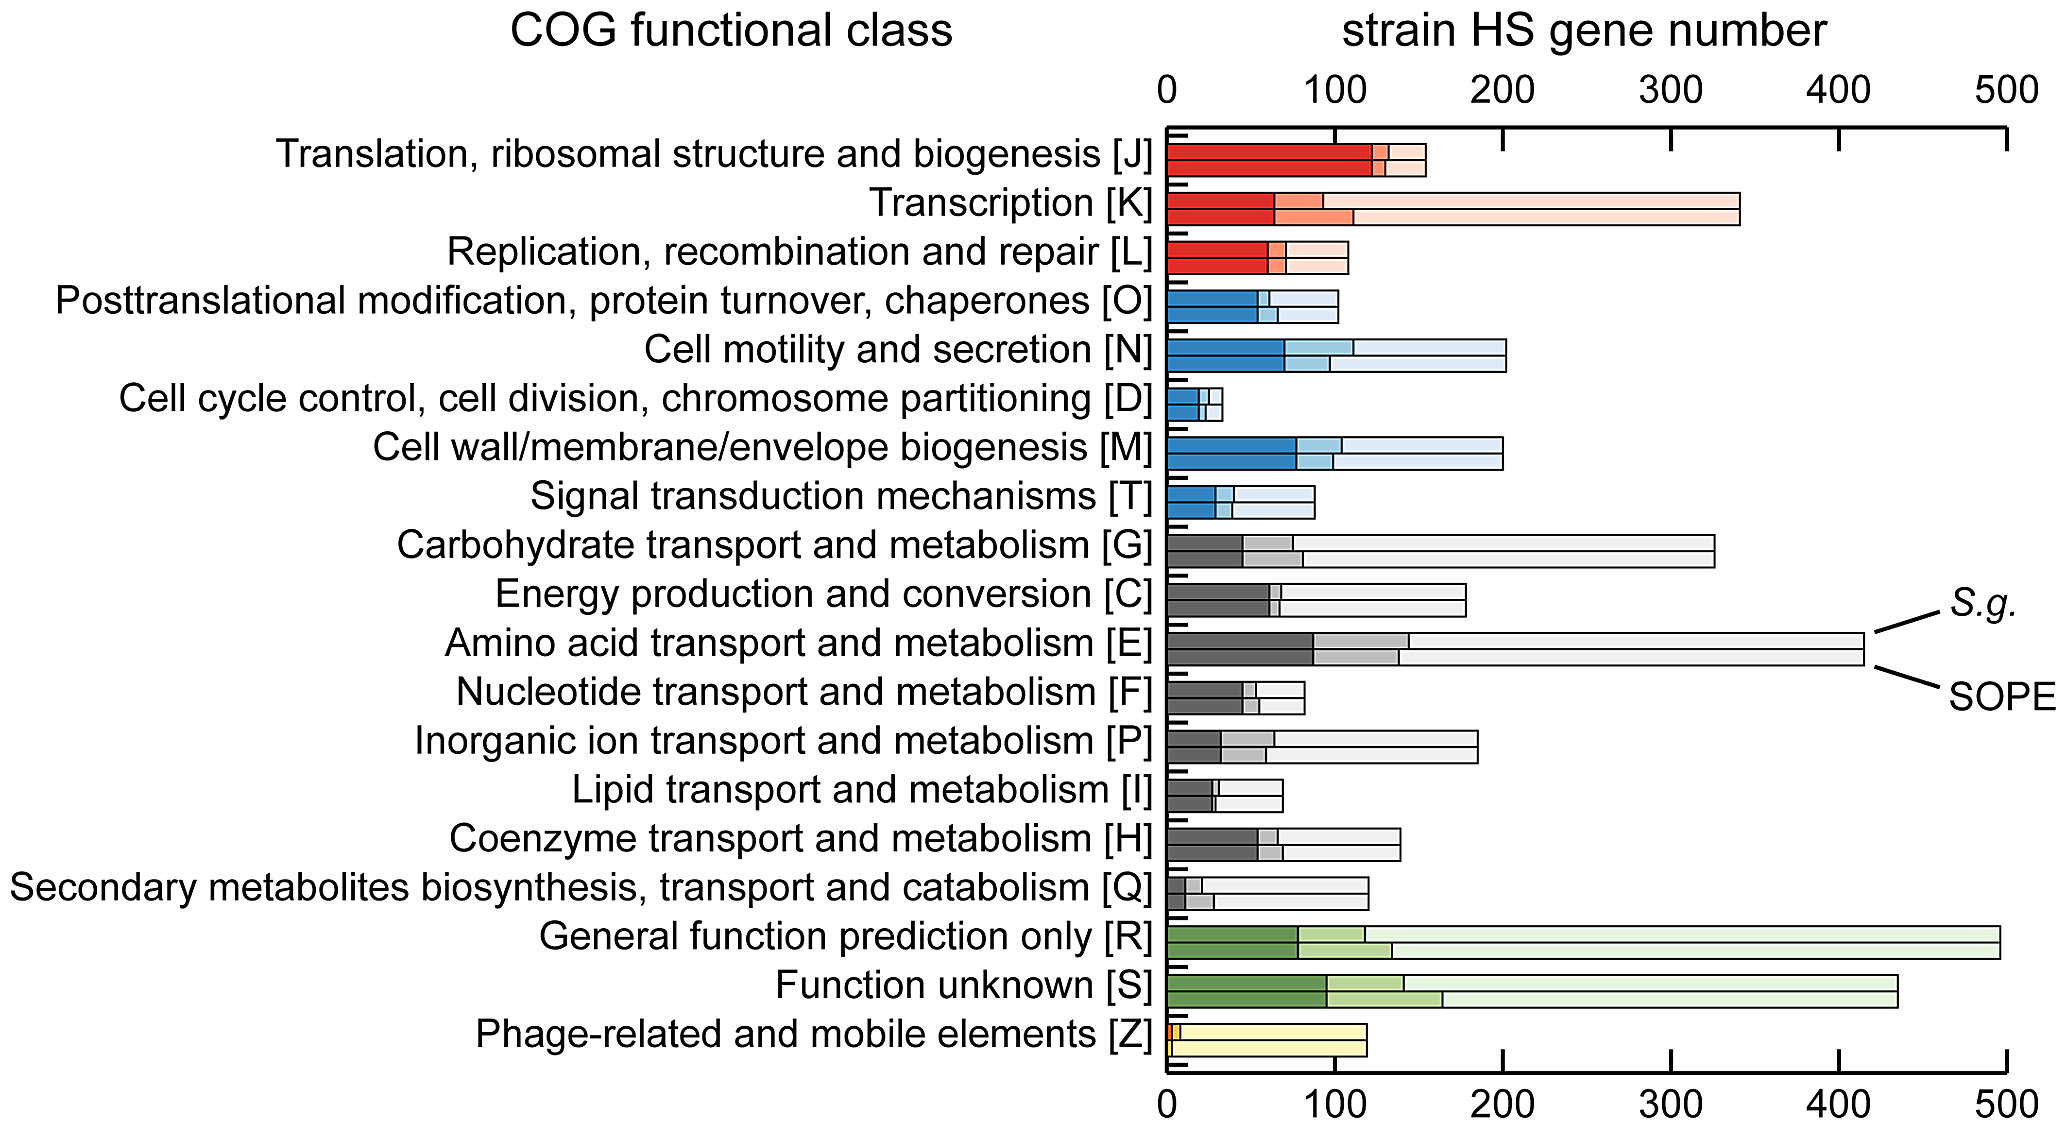 Retention of strain HS orthologs in <i>S. glossinidius</i> and SOPE according to COG functional category.